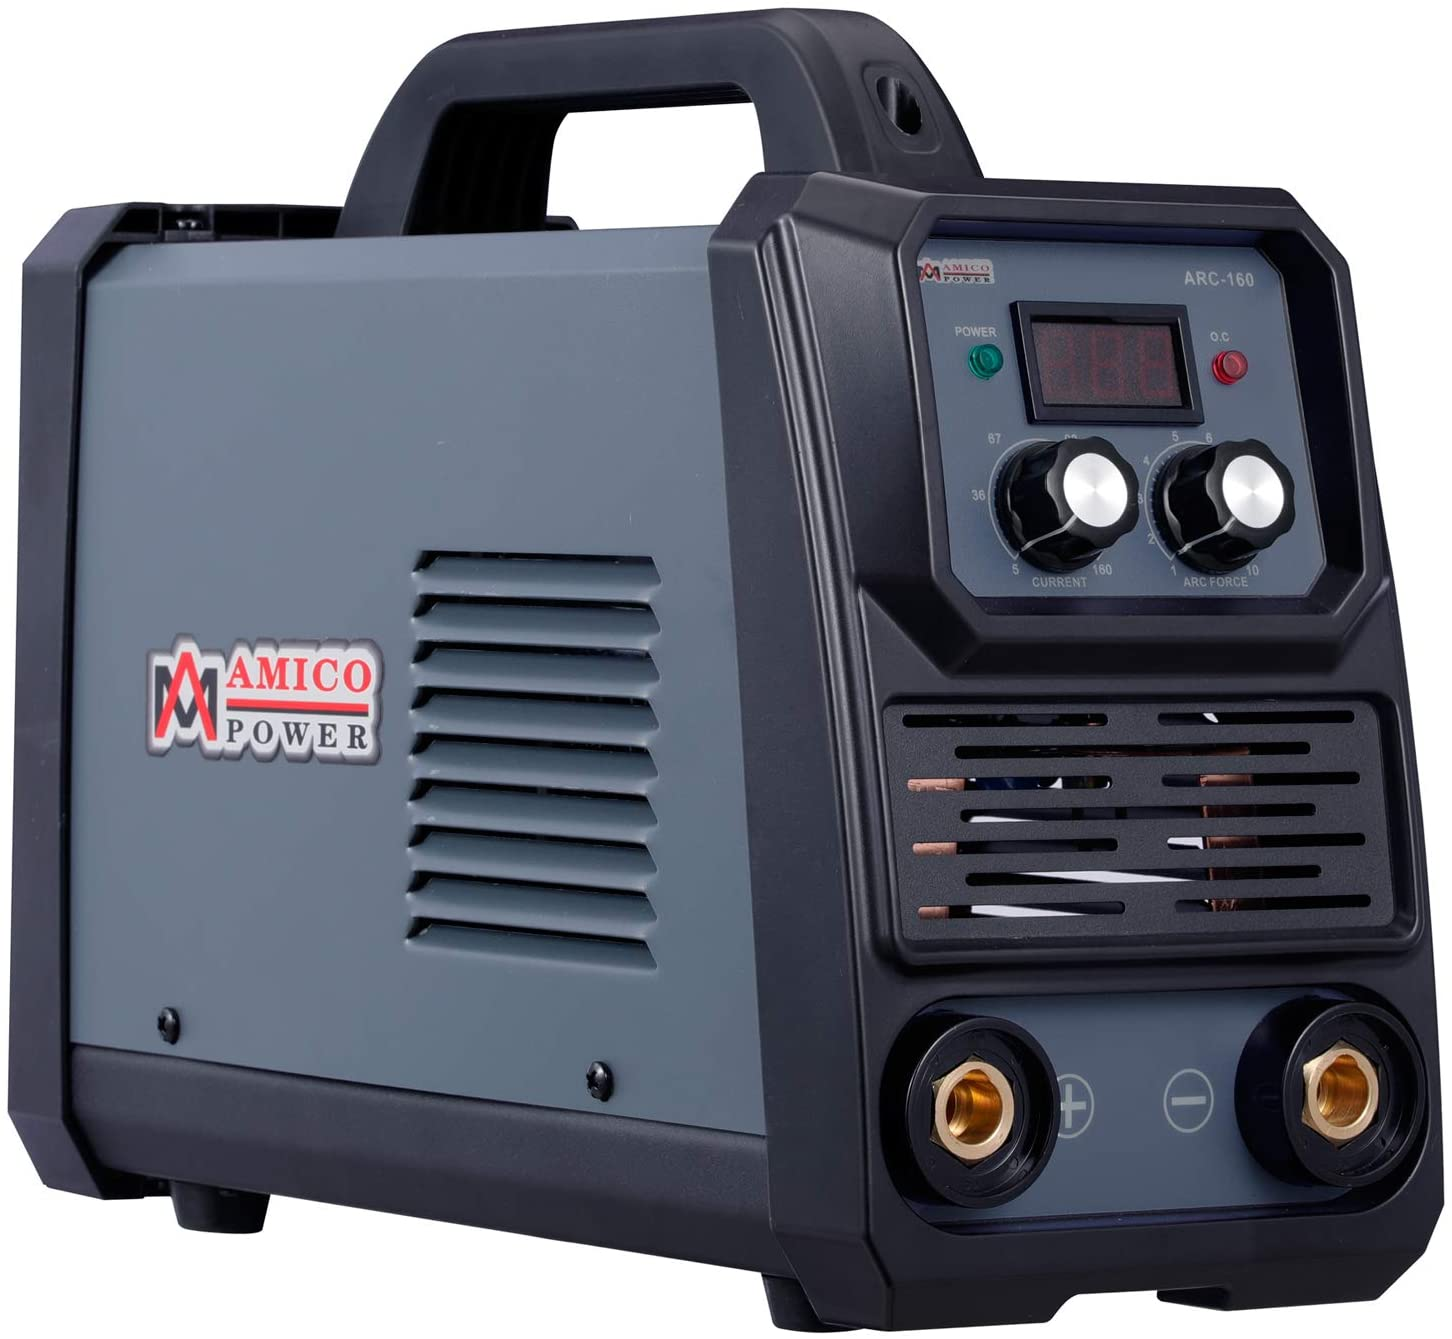 Amico 160 Amp Stick ARC Welder For Exhaust System